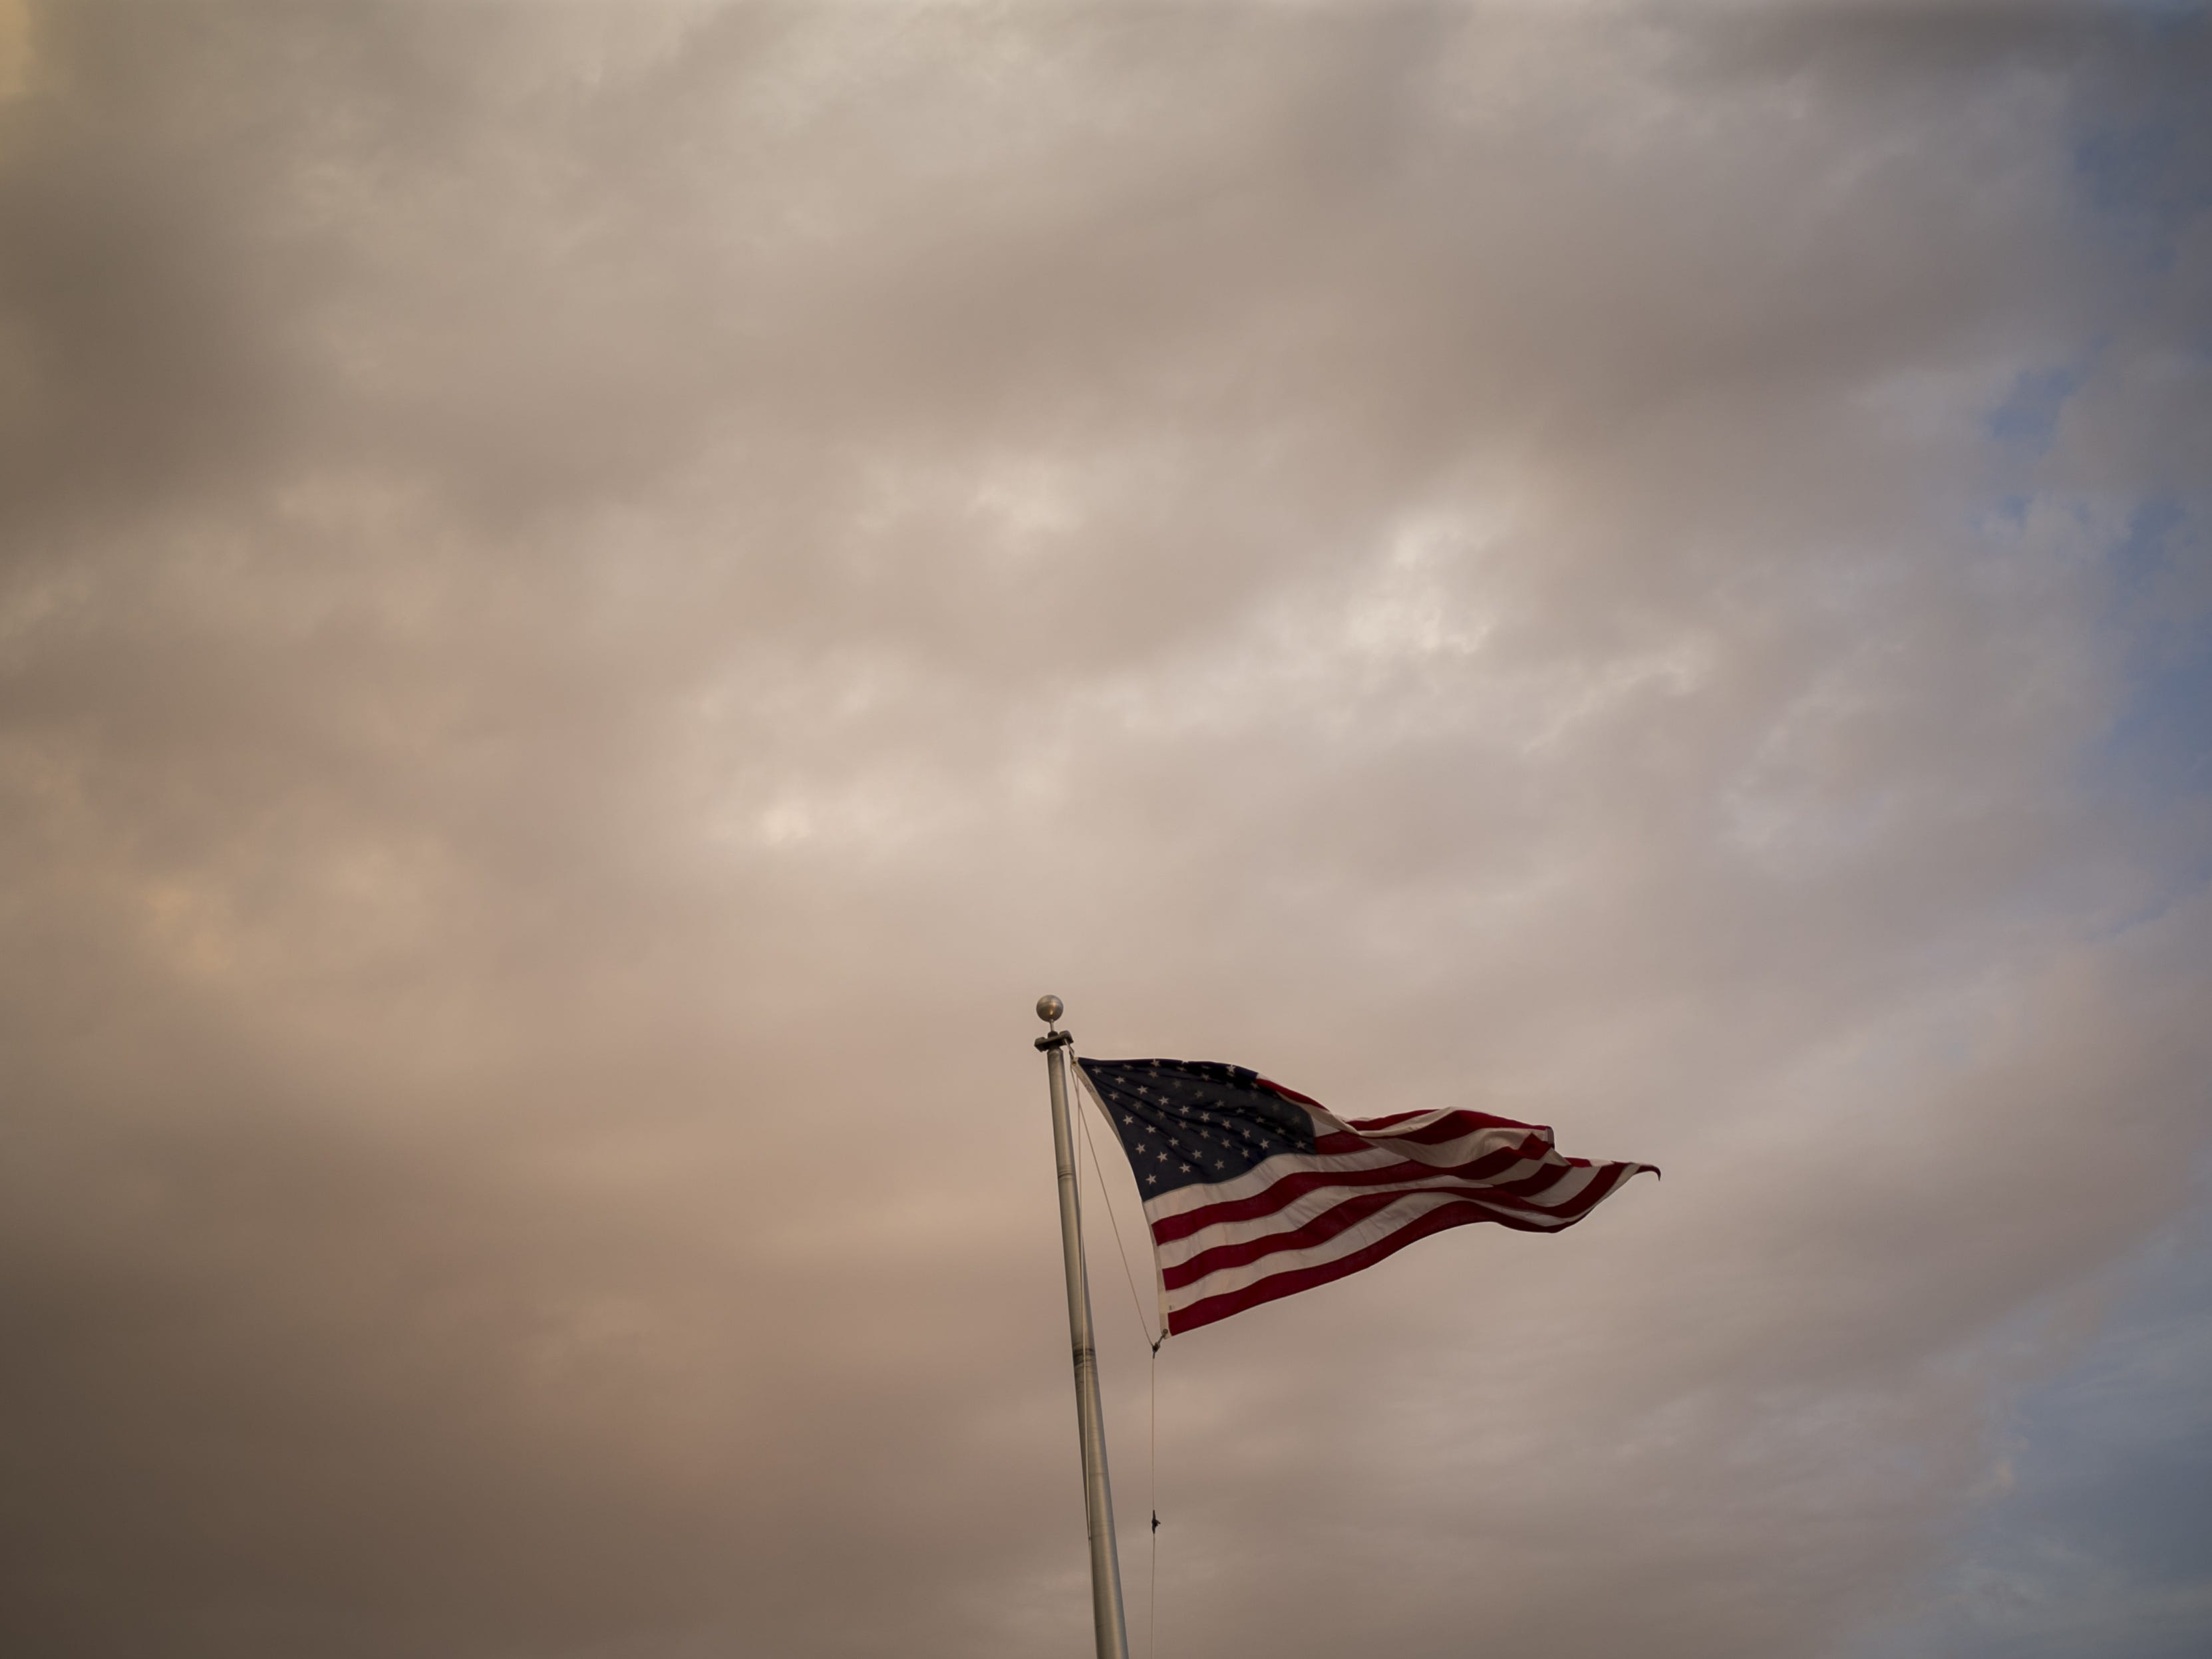 An American flag blows in the wind as a dust storm approaches Estrella Foothills High School in Goodyear, Ariz. on Sun. Aug 12, 2018.